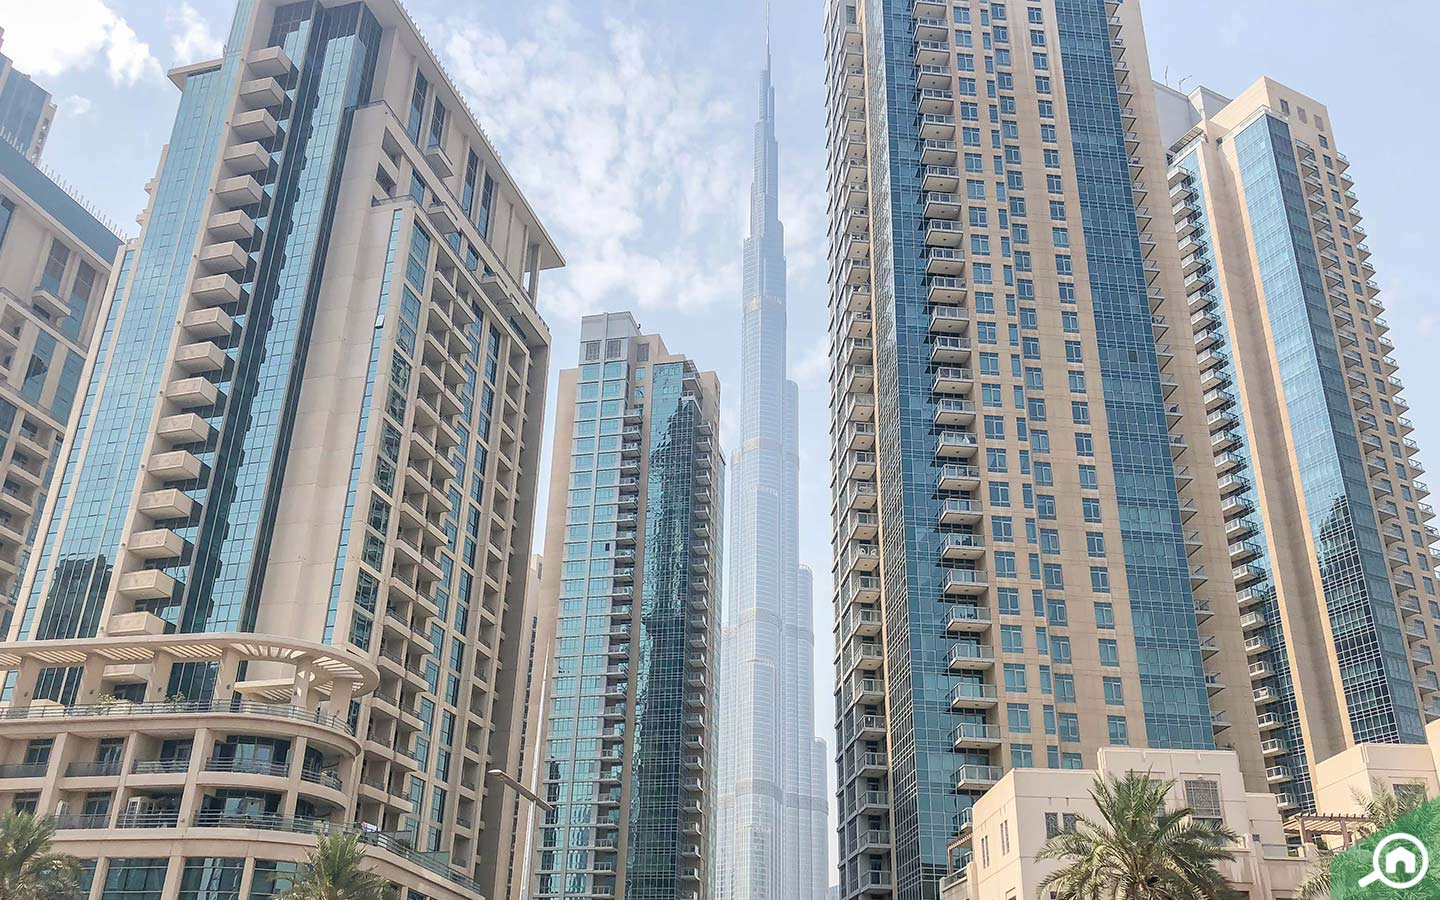 Downtown Dubai apartment buildings with Burj Khalifa in the background